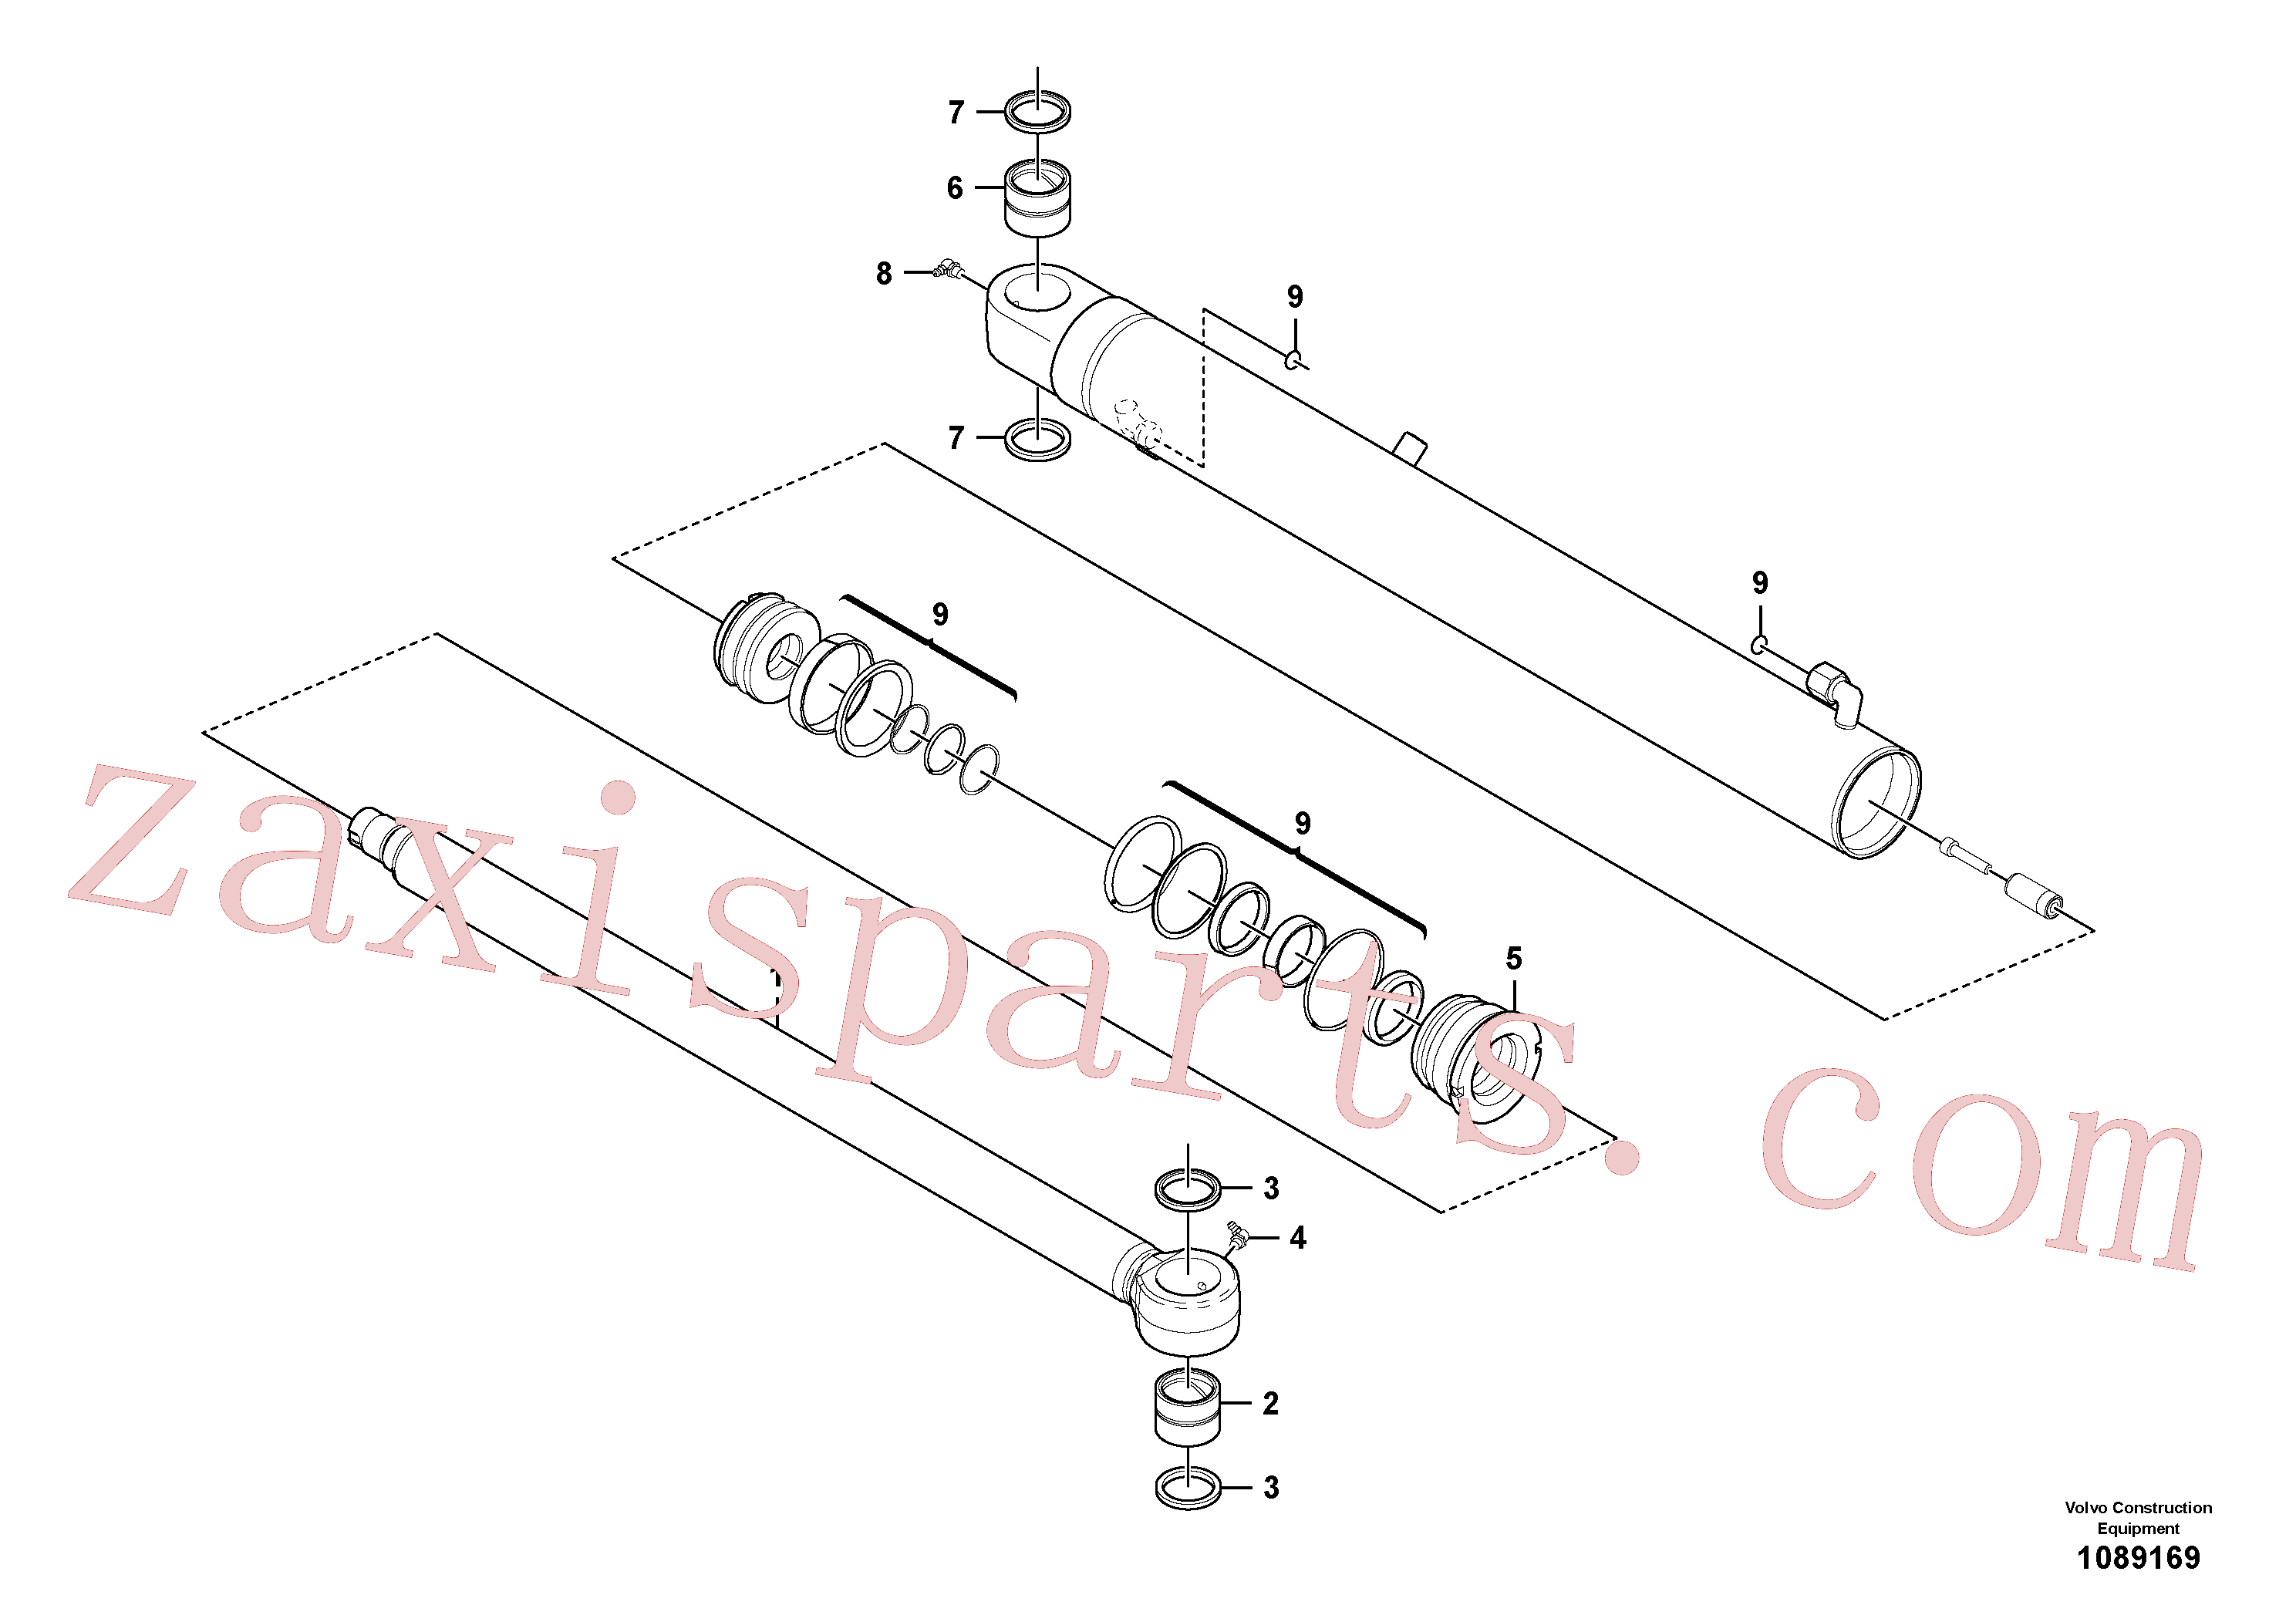 VOE11988967 for Volvo Dipper arm cylinder(1089169 assembly)